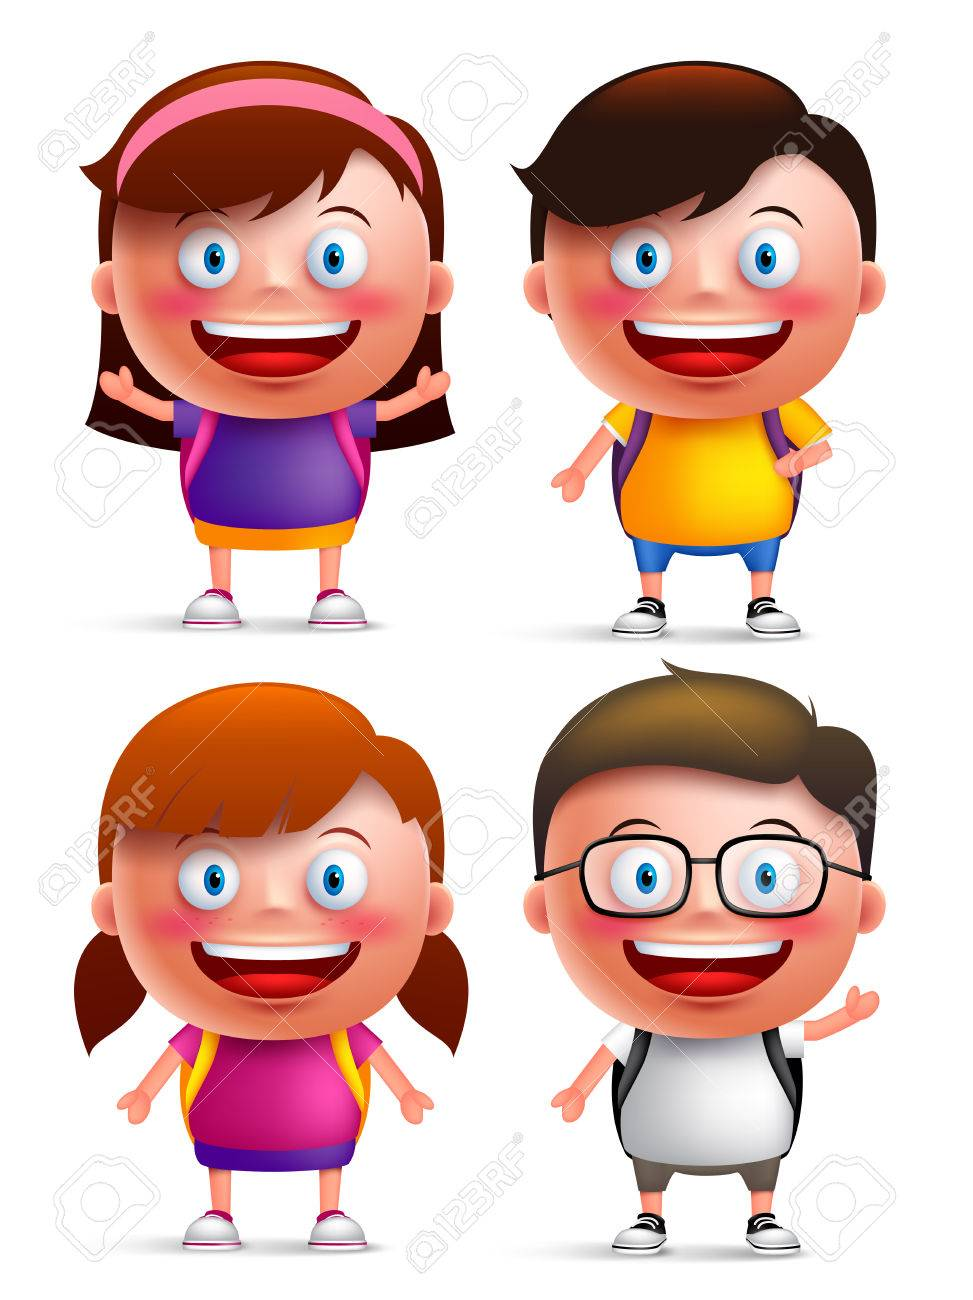 Kids students vector characters set with happy faces and hand gestures wearing backpacks for back to school isolated in white background. Vector illustration - 57859991